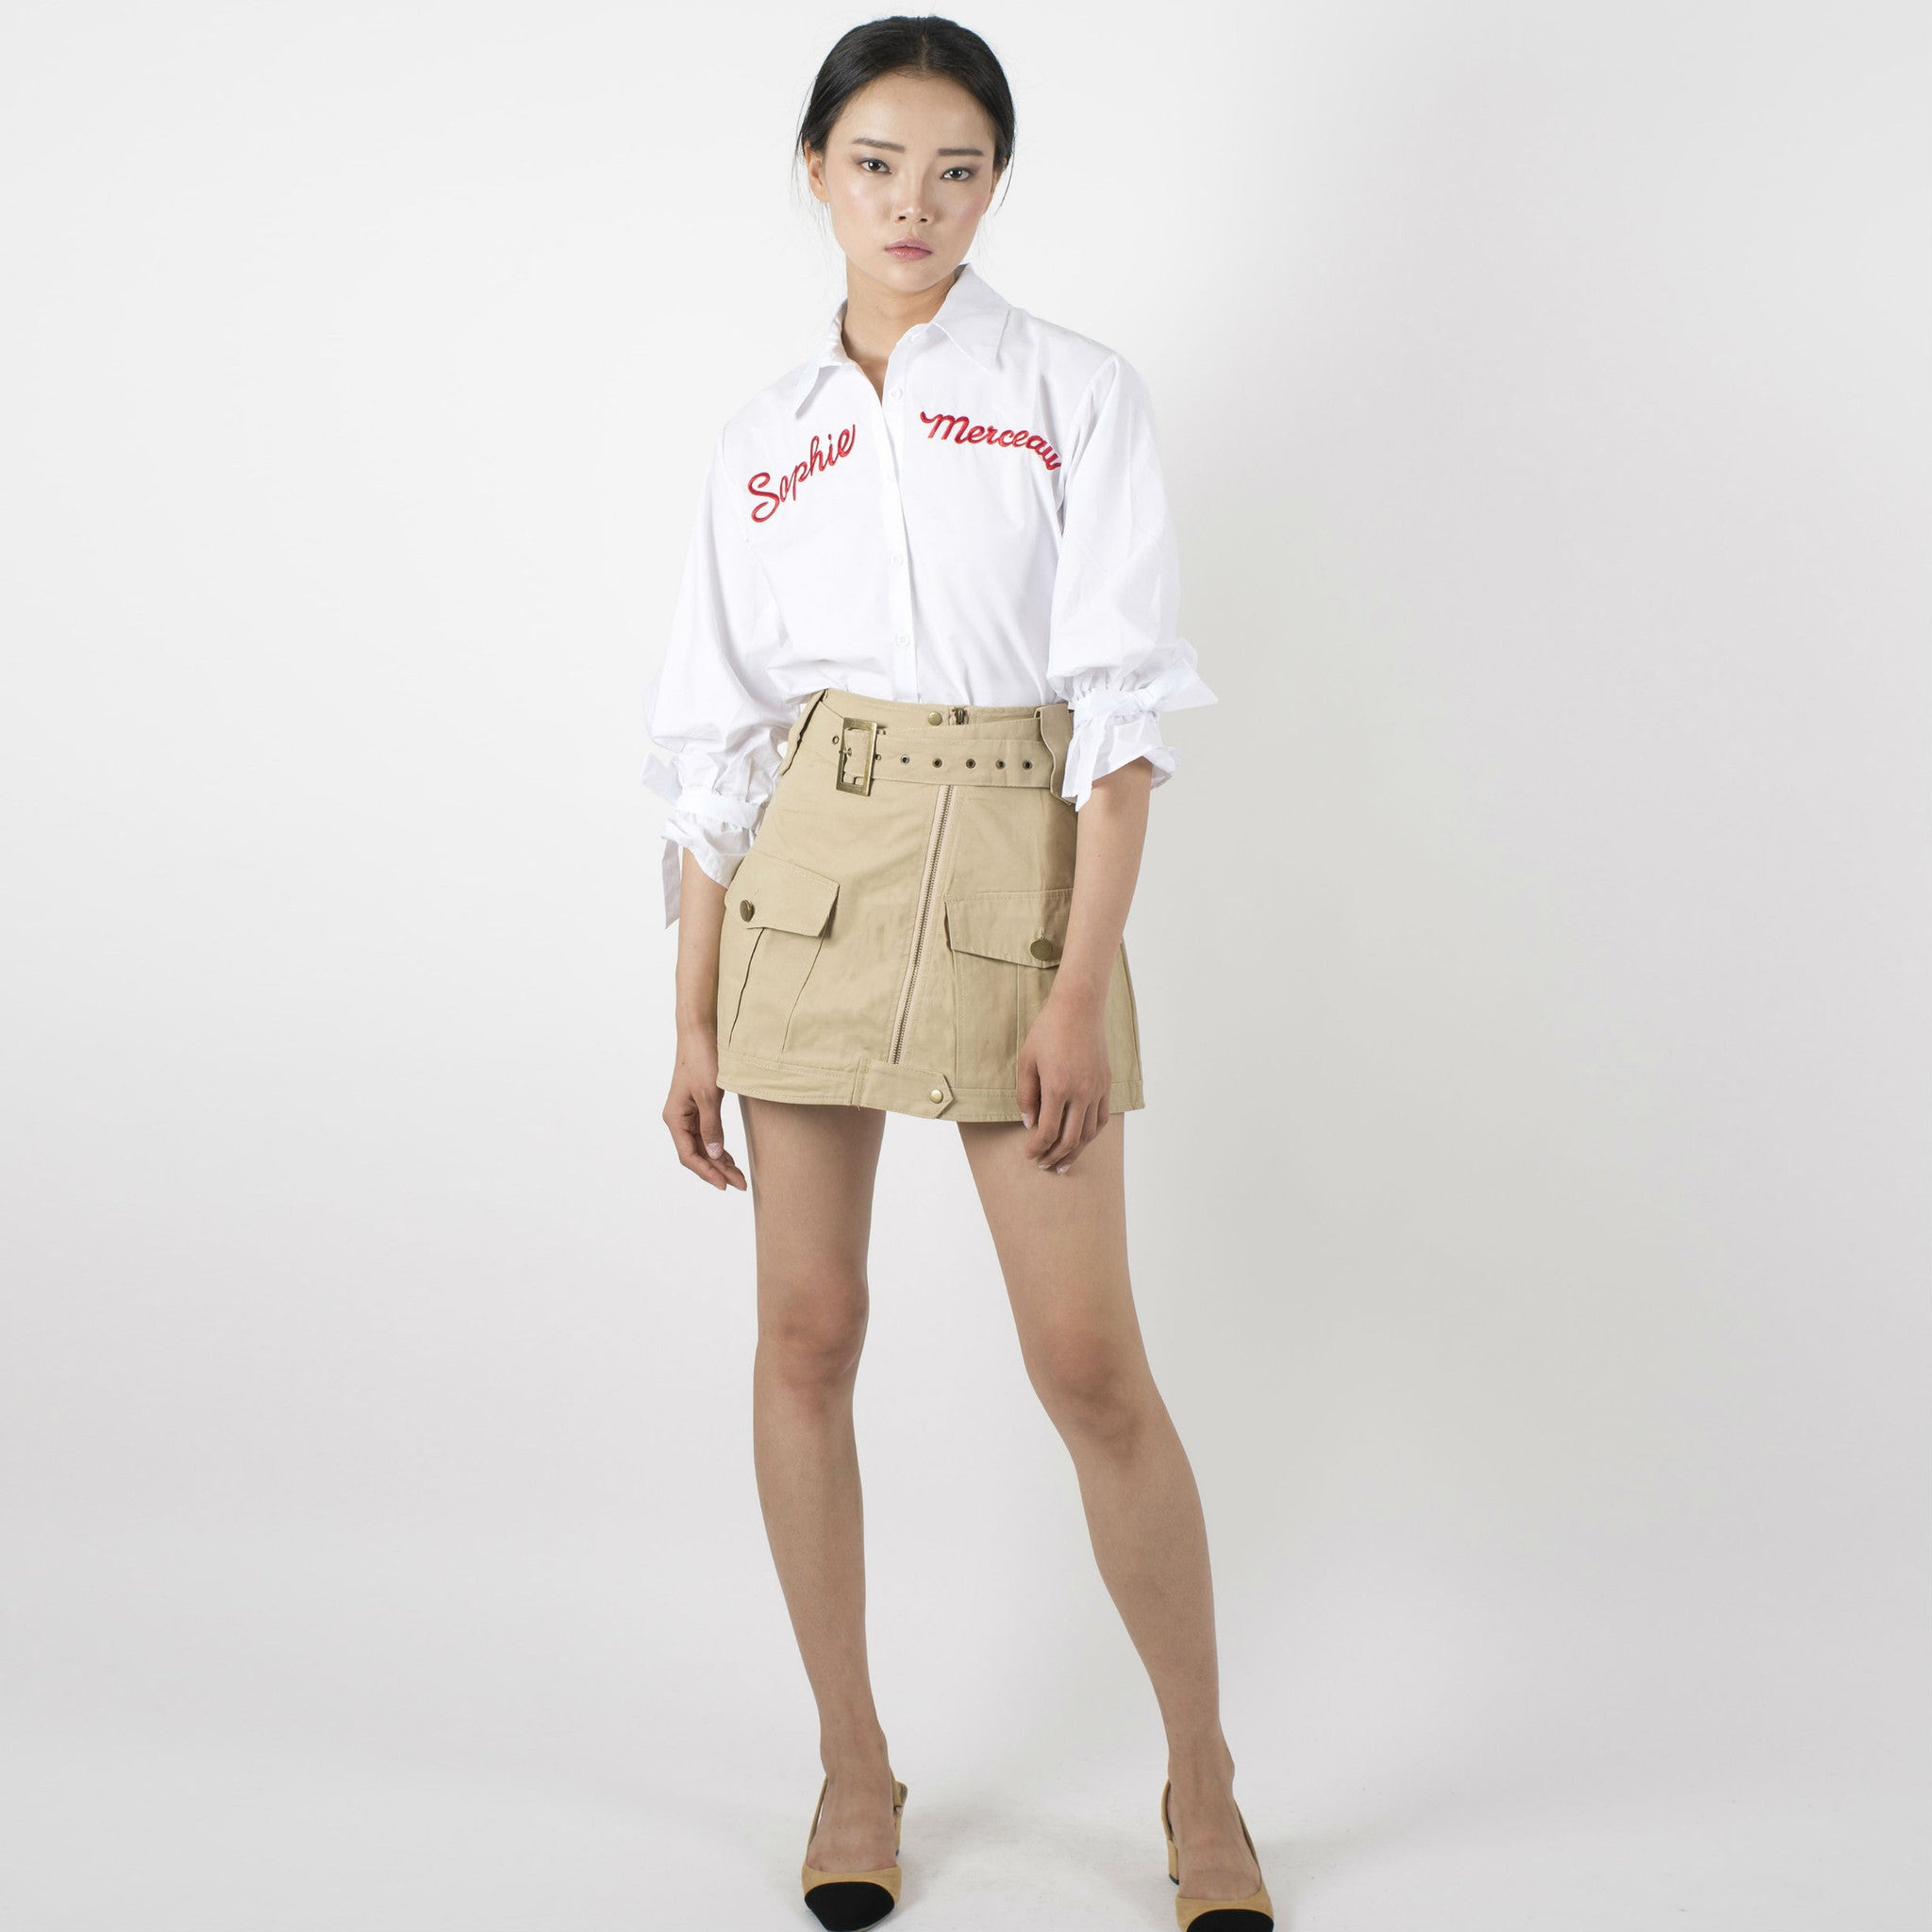 Joann Military Skirt - Khaki